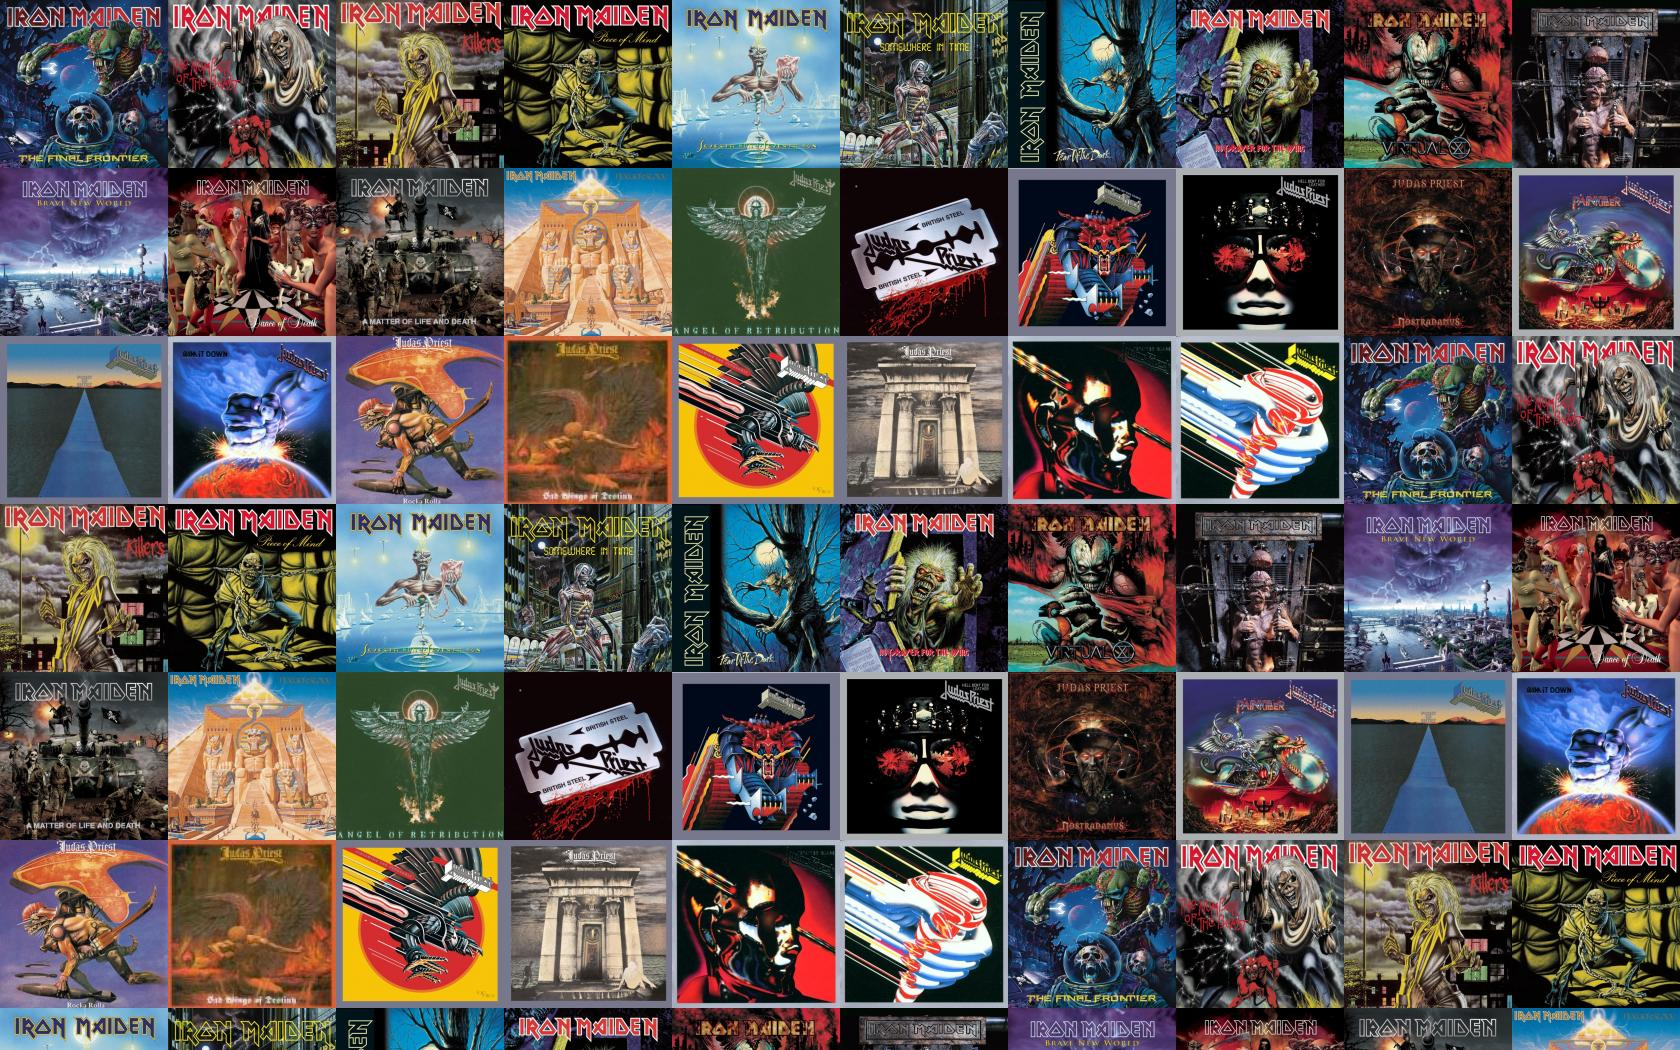 Iron Maiden Iron Maiden The Number Of The Wallpaper Tiled